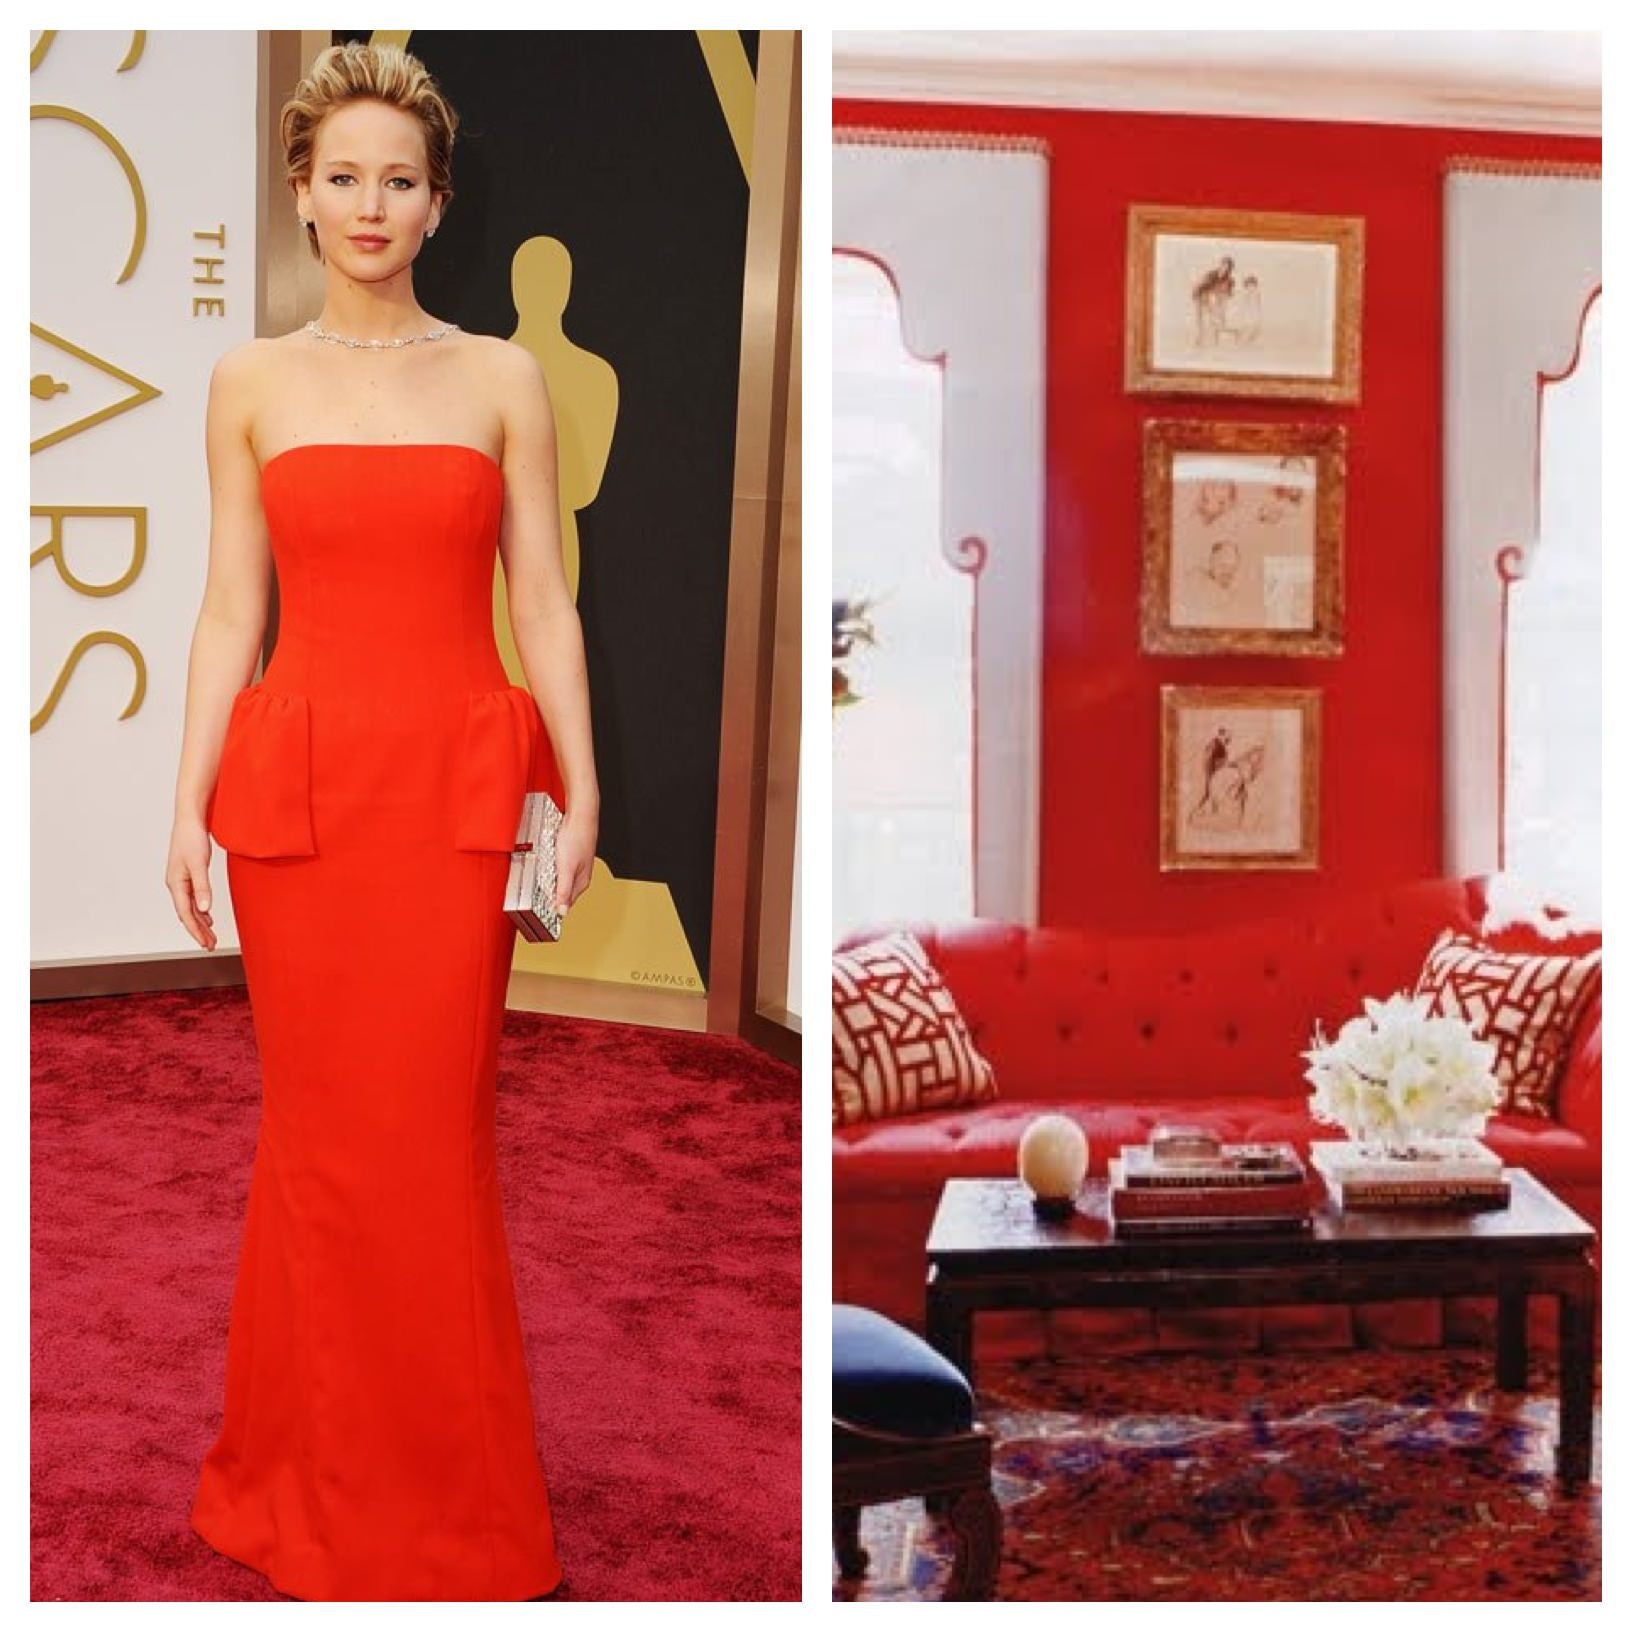 jennifer lawrence, jennifer lawrence fashion, jennifer lawrence oscar dress 2014, red rooms, organized space, beautiful red room